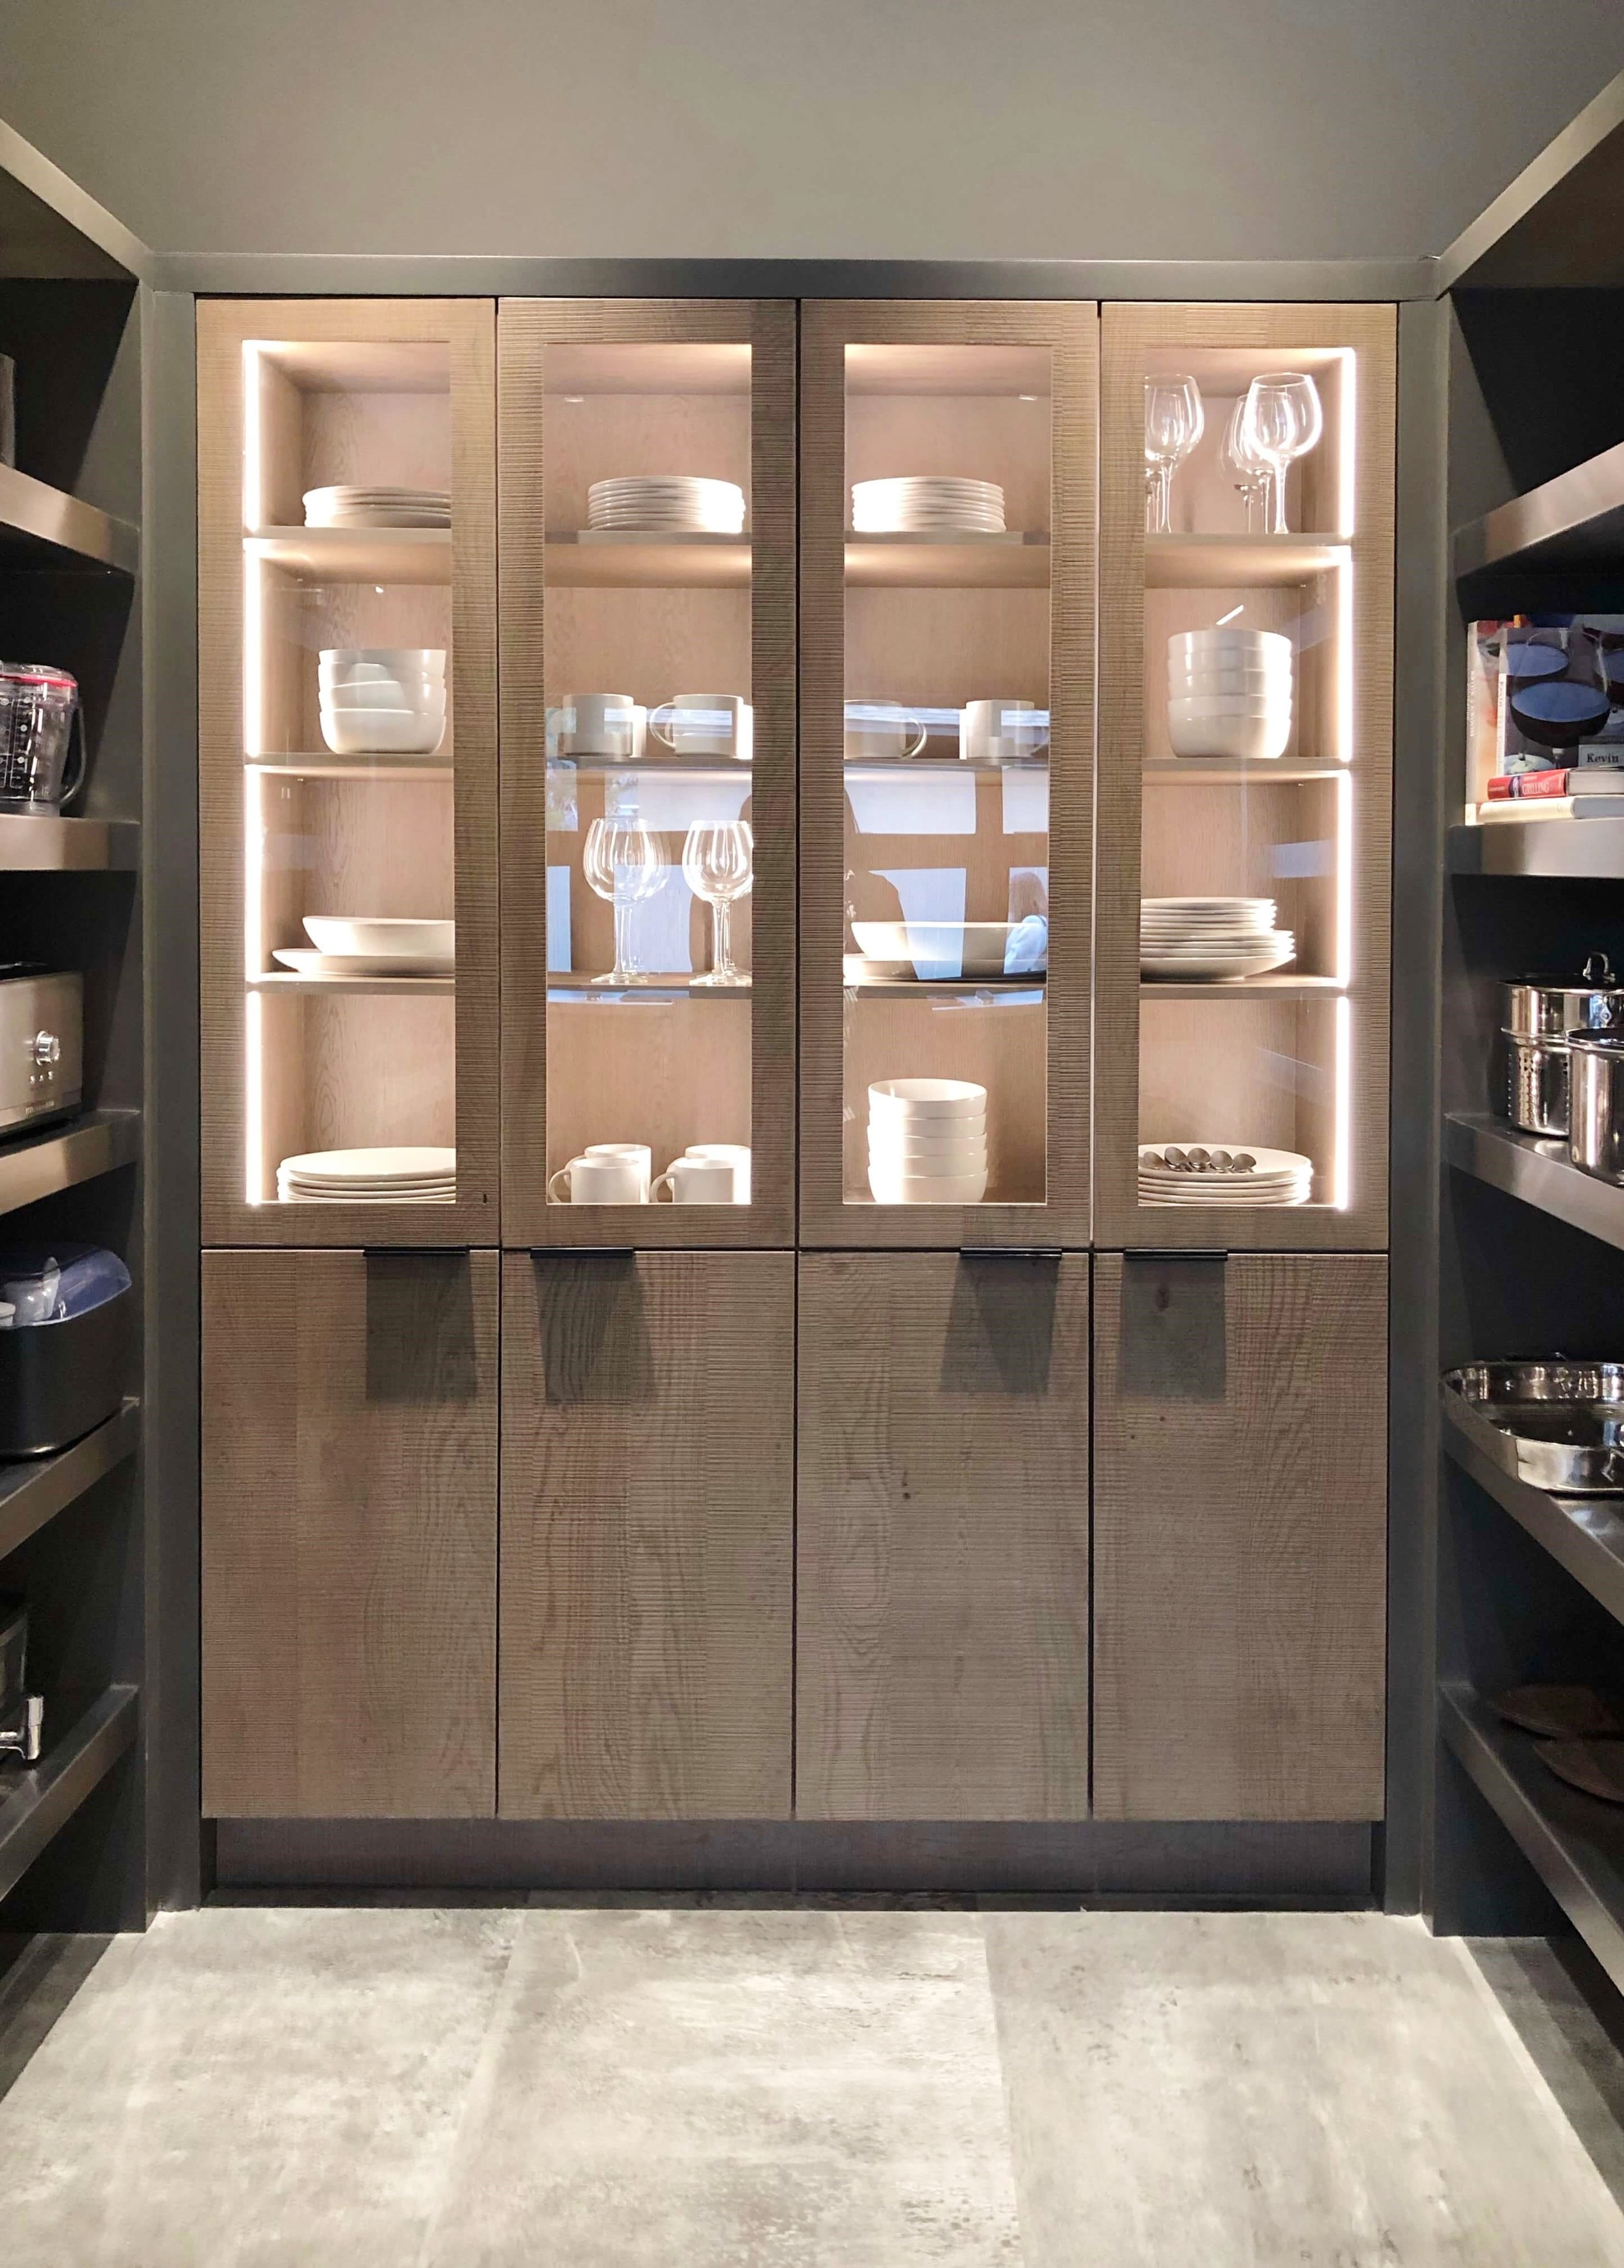 The large pantry with closed and open storage works for dishes, food, small appliances or cookware. The New American Remodel 2019 #hometour #cooktop #gaggenau #kitchen #contemporaryhome